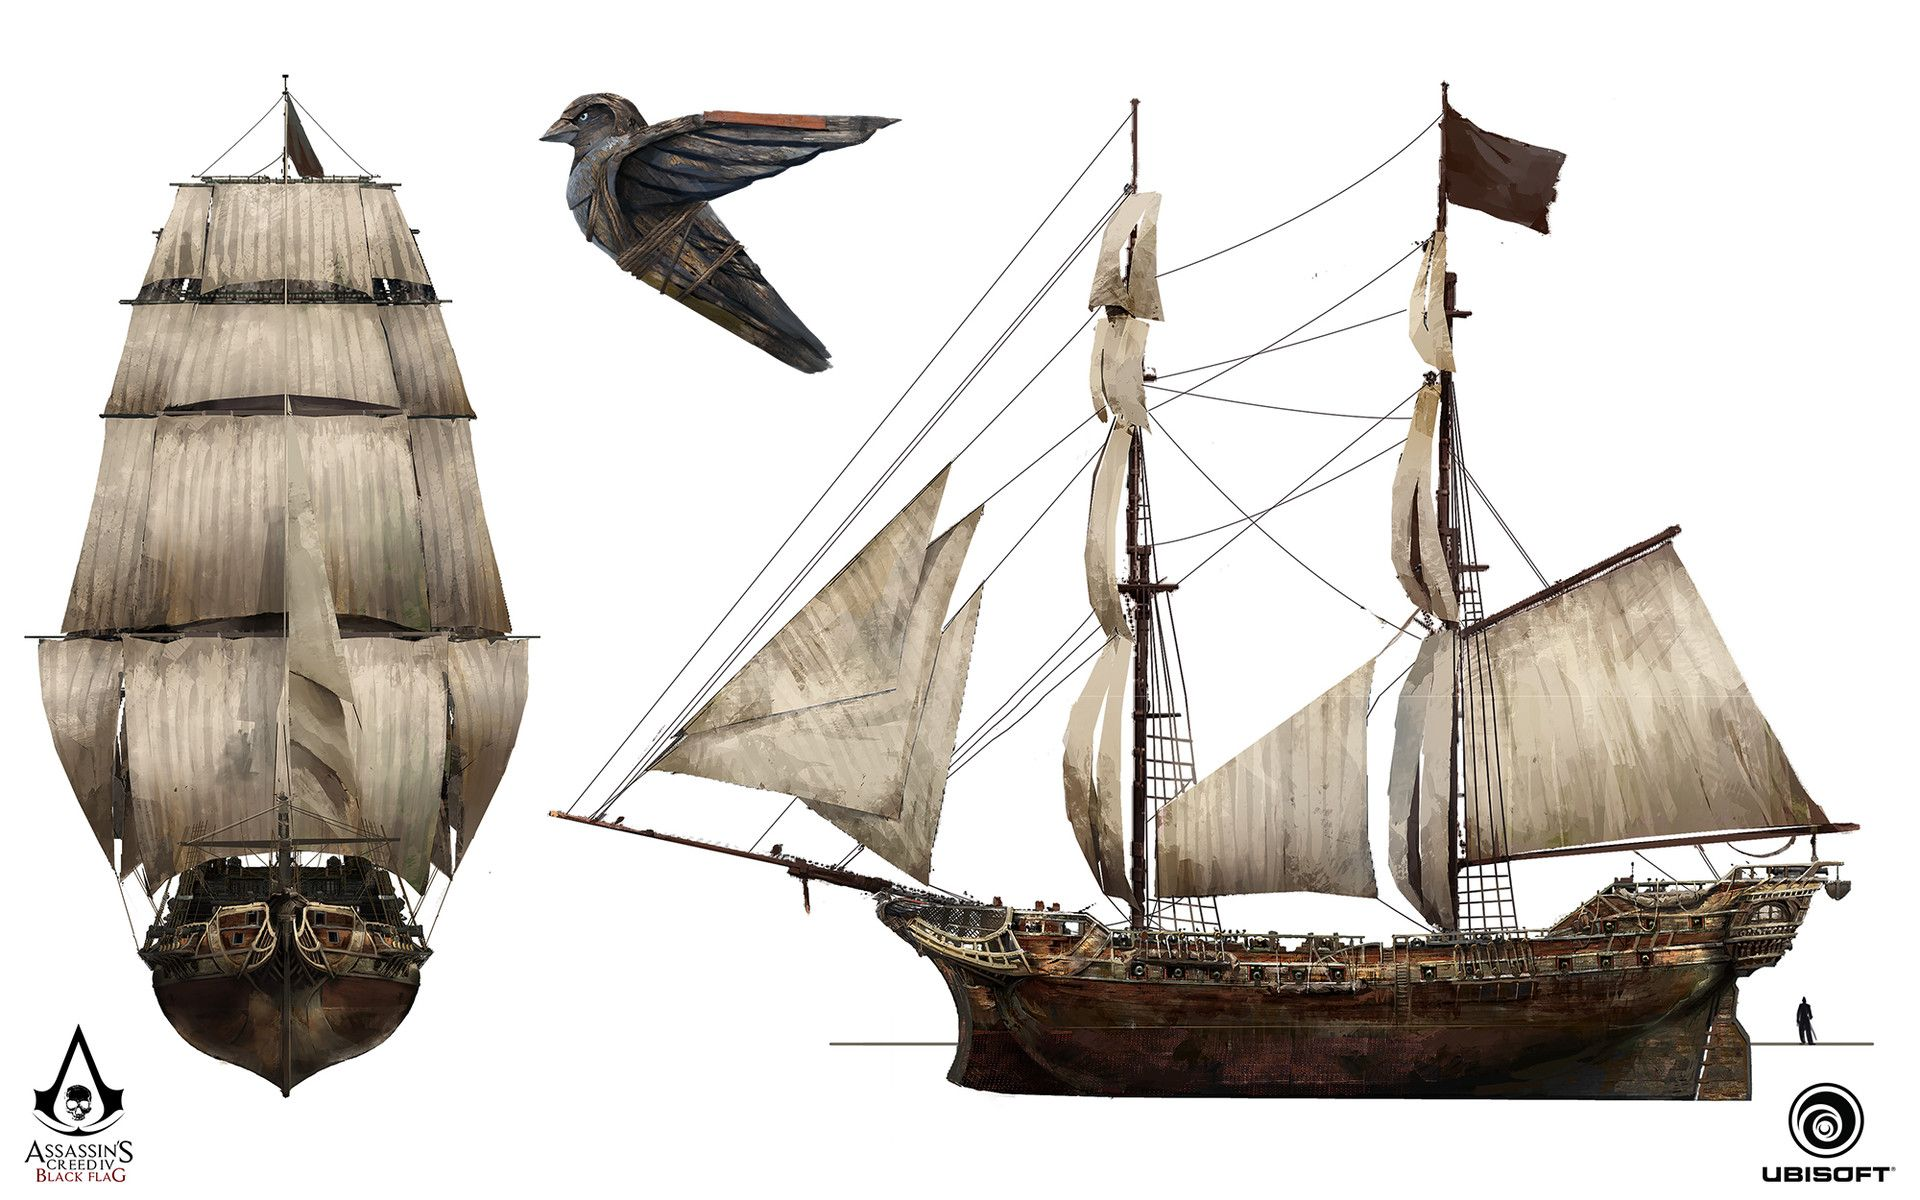 Assassin S Creed Iv Black Flag Jackdaw And The Rouge Design Teo Yong Jin Assassins Creed Black Flag Assassins Creed 4 Assassins Creed